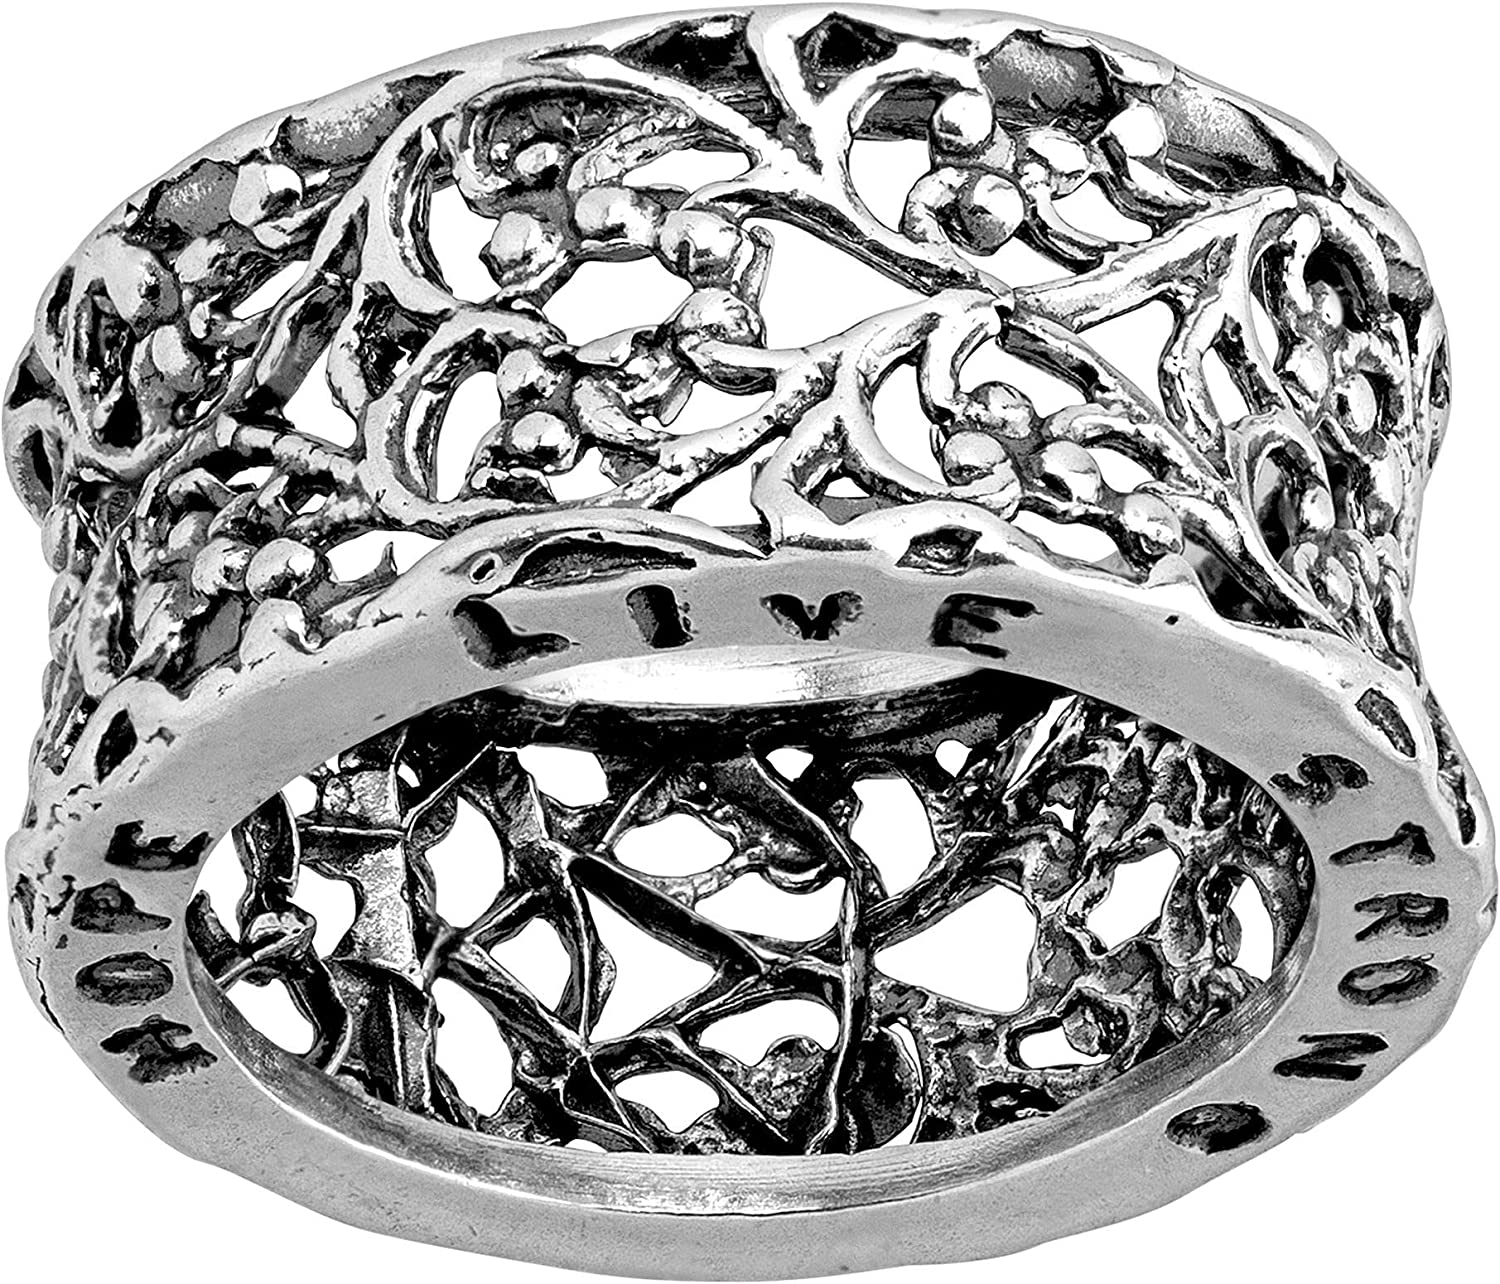 Austin Cheap mail order shopping Mall Silpada 'Hope Live Strong' Filigree Ster Engraved Band in Ring